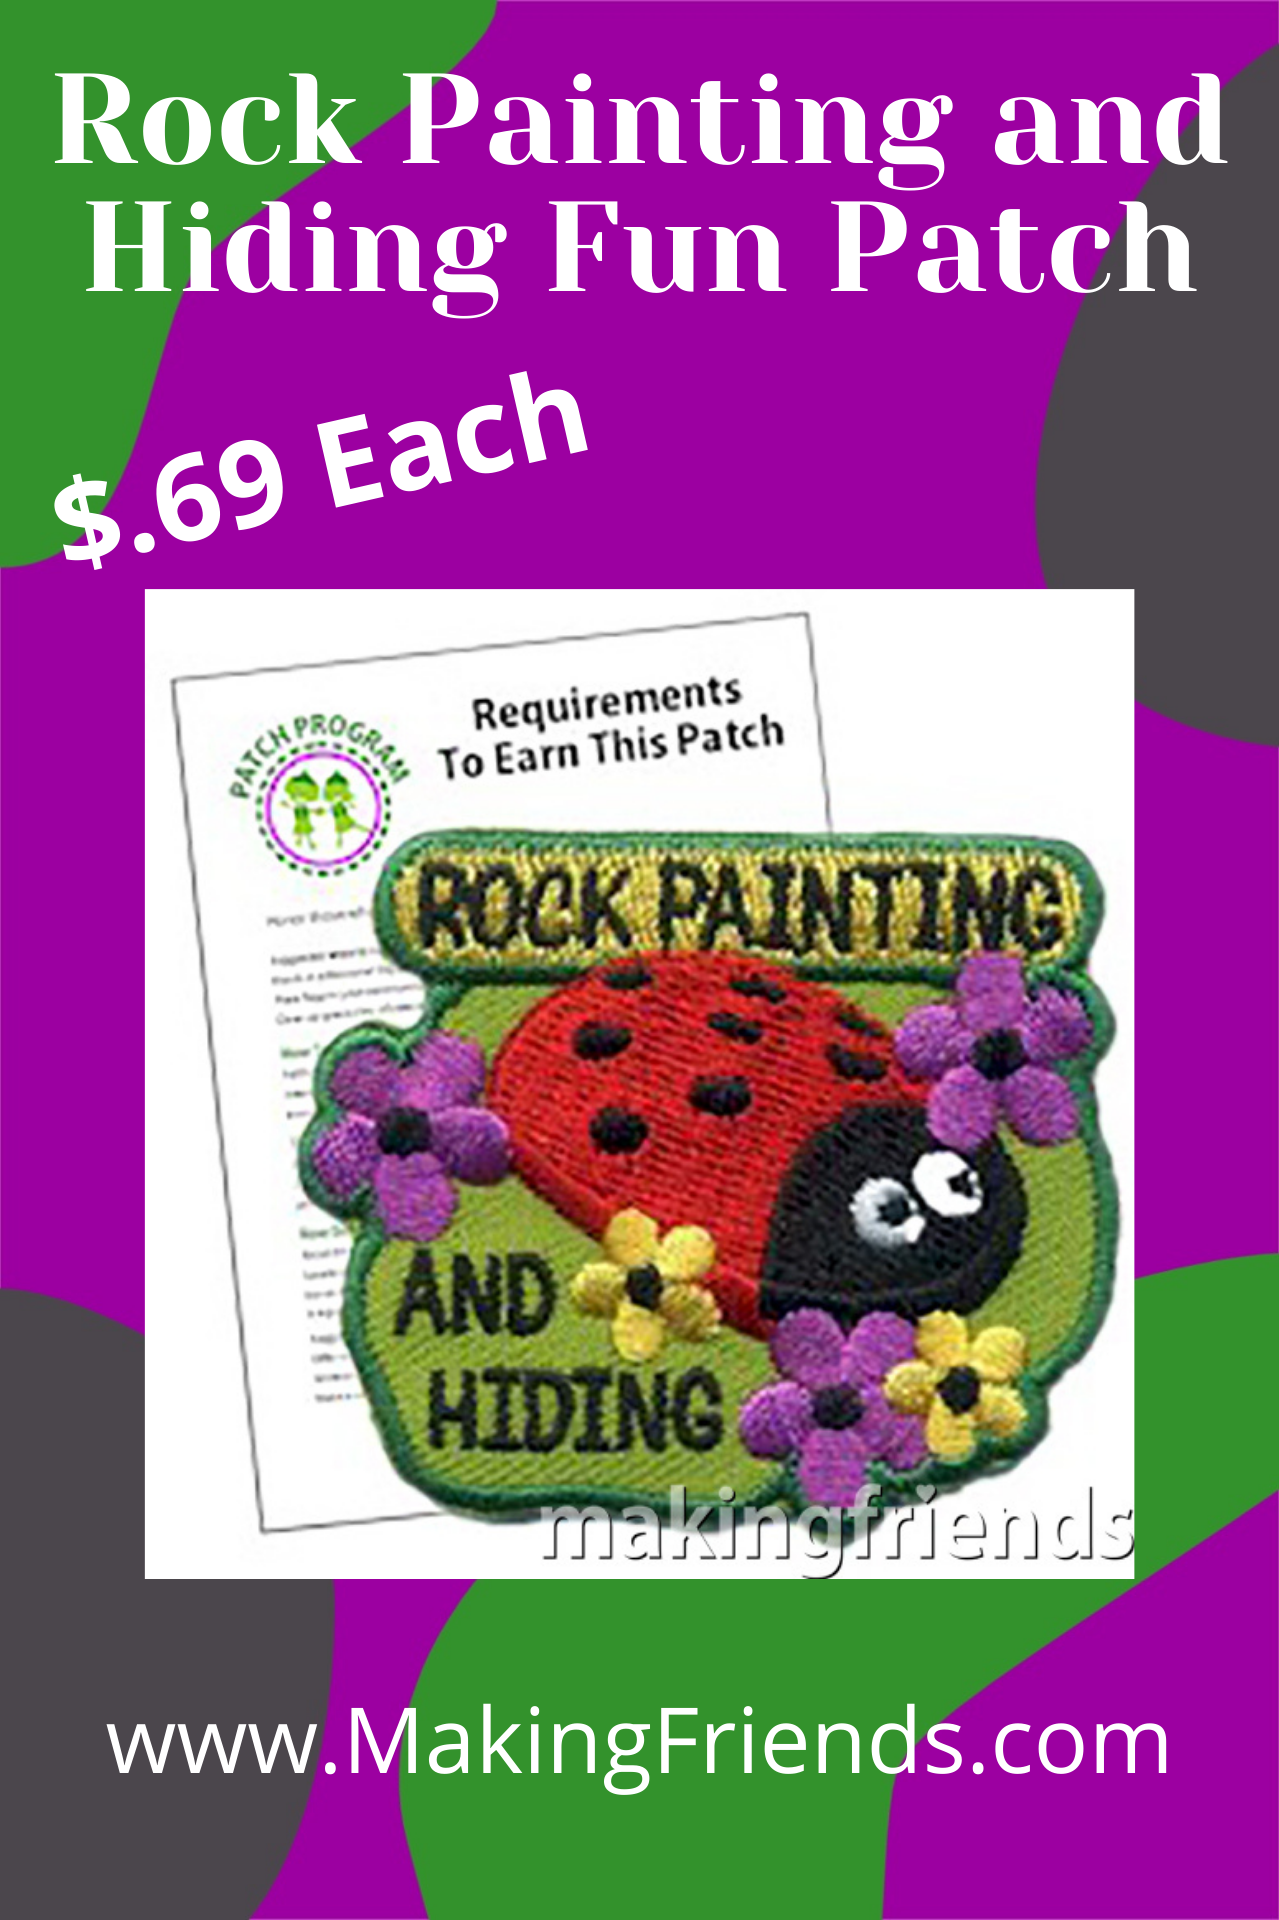 Rock Painting and hunting for painted rocks has quickly become a popular trend. It's a fun and creative way to combine art, outdoor activity, and community spirit. #makingfriends #patchprogram #rockpainting #painting #outdoorpainting #community #paintrocks #rockhiding via @gsleader411